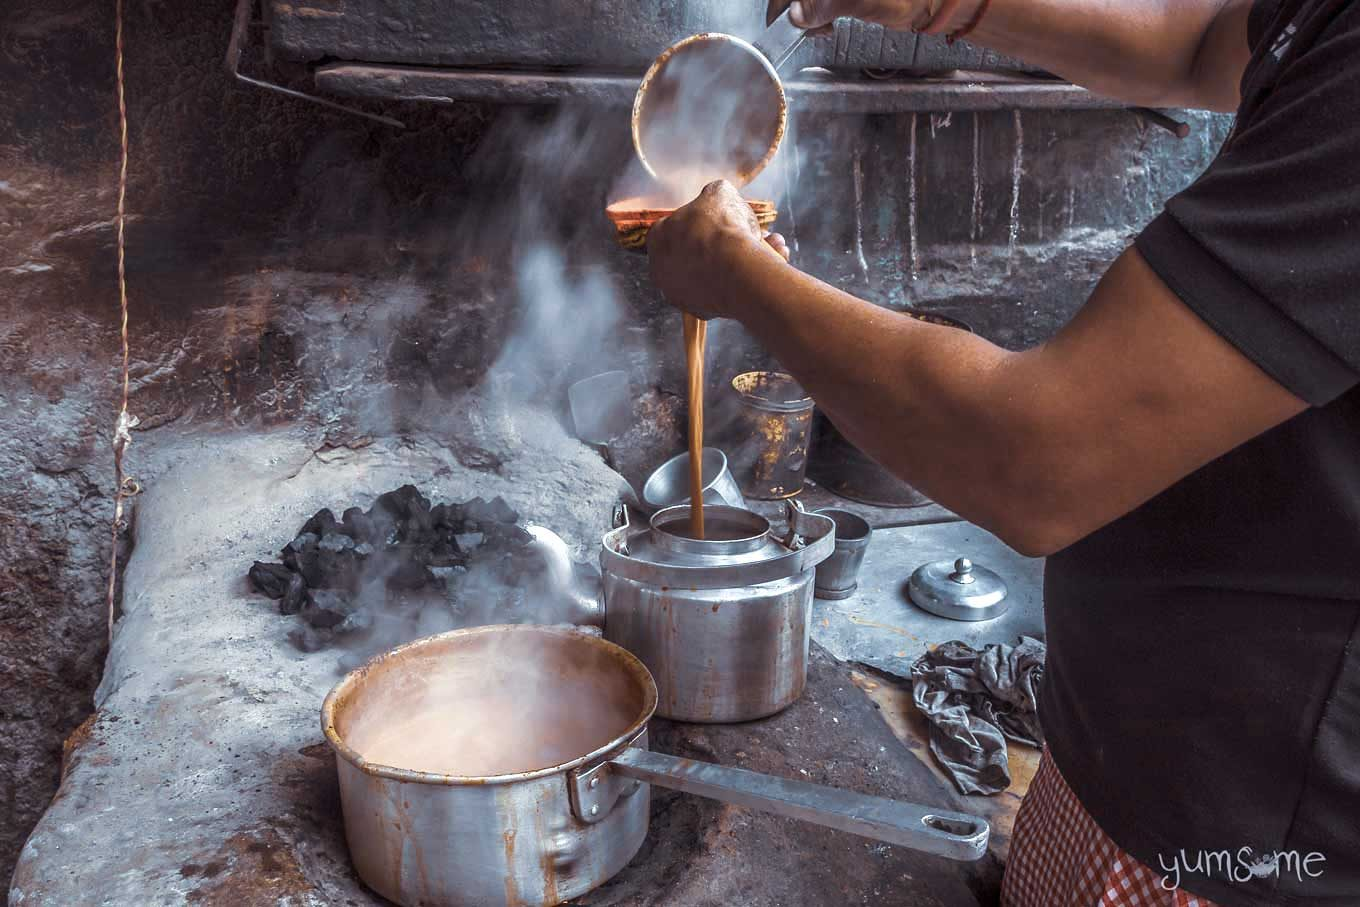 A chai wallah in India straining some masala chai into a large metal teapot.